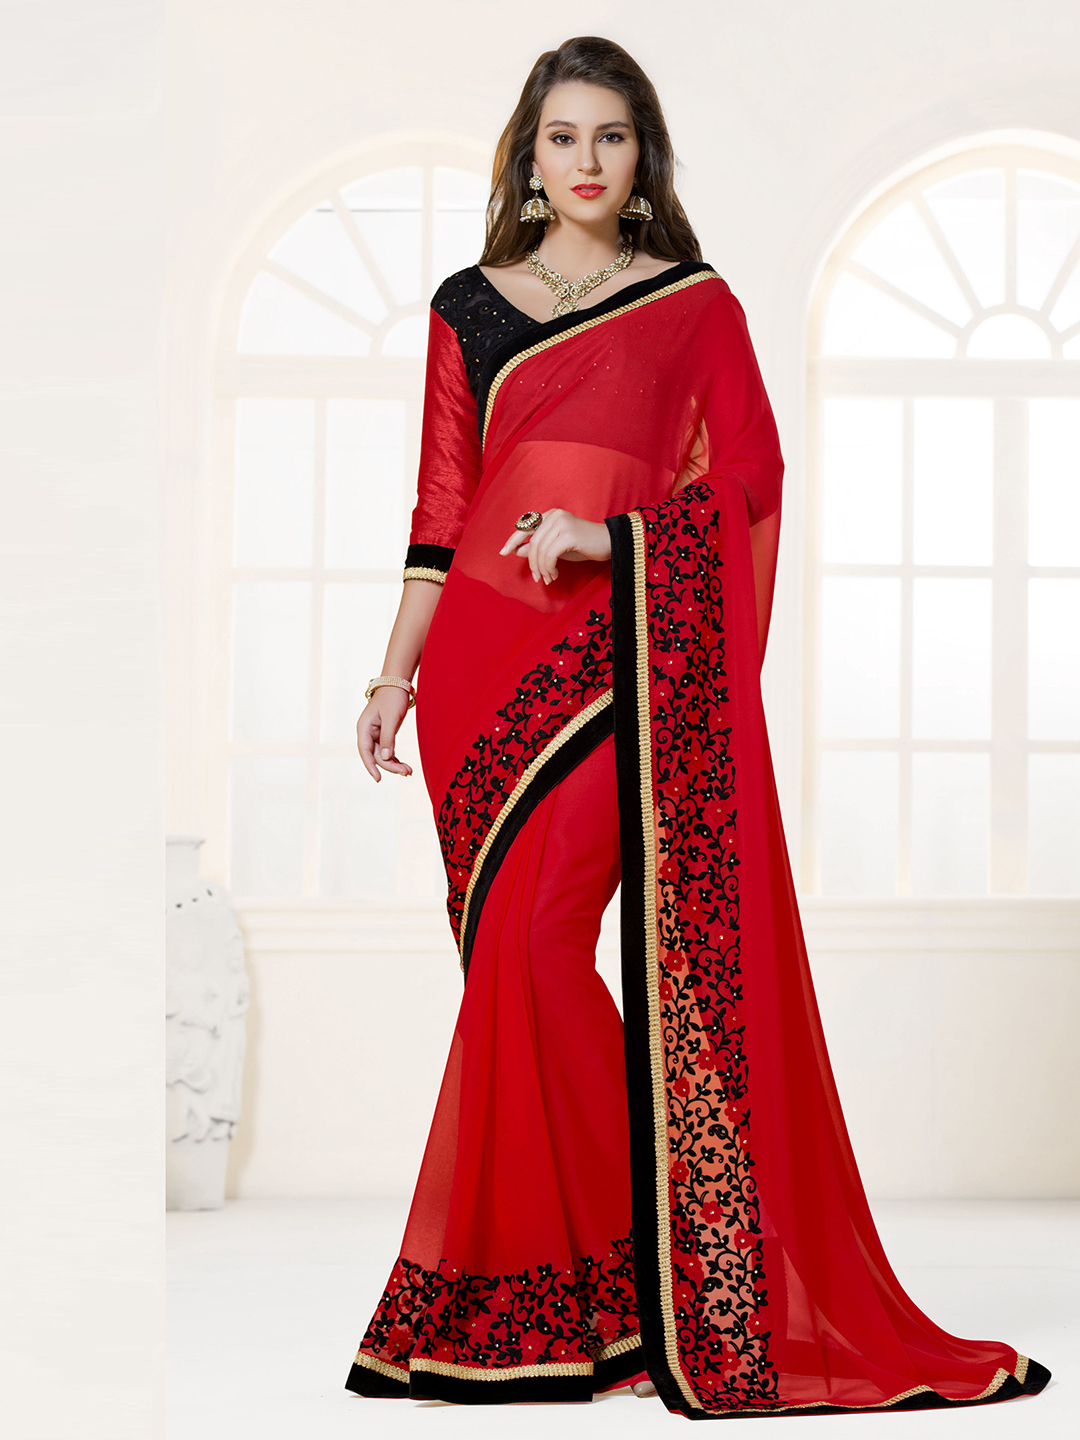 bc36e40c376956 Red Faux Georgette Partywear Saree. Red colored georgette designer sari  with zari work, contrast velvet contrast lace